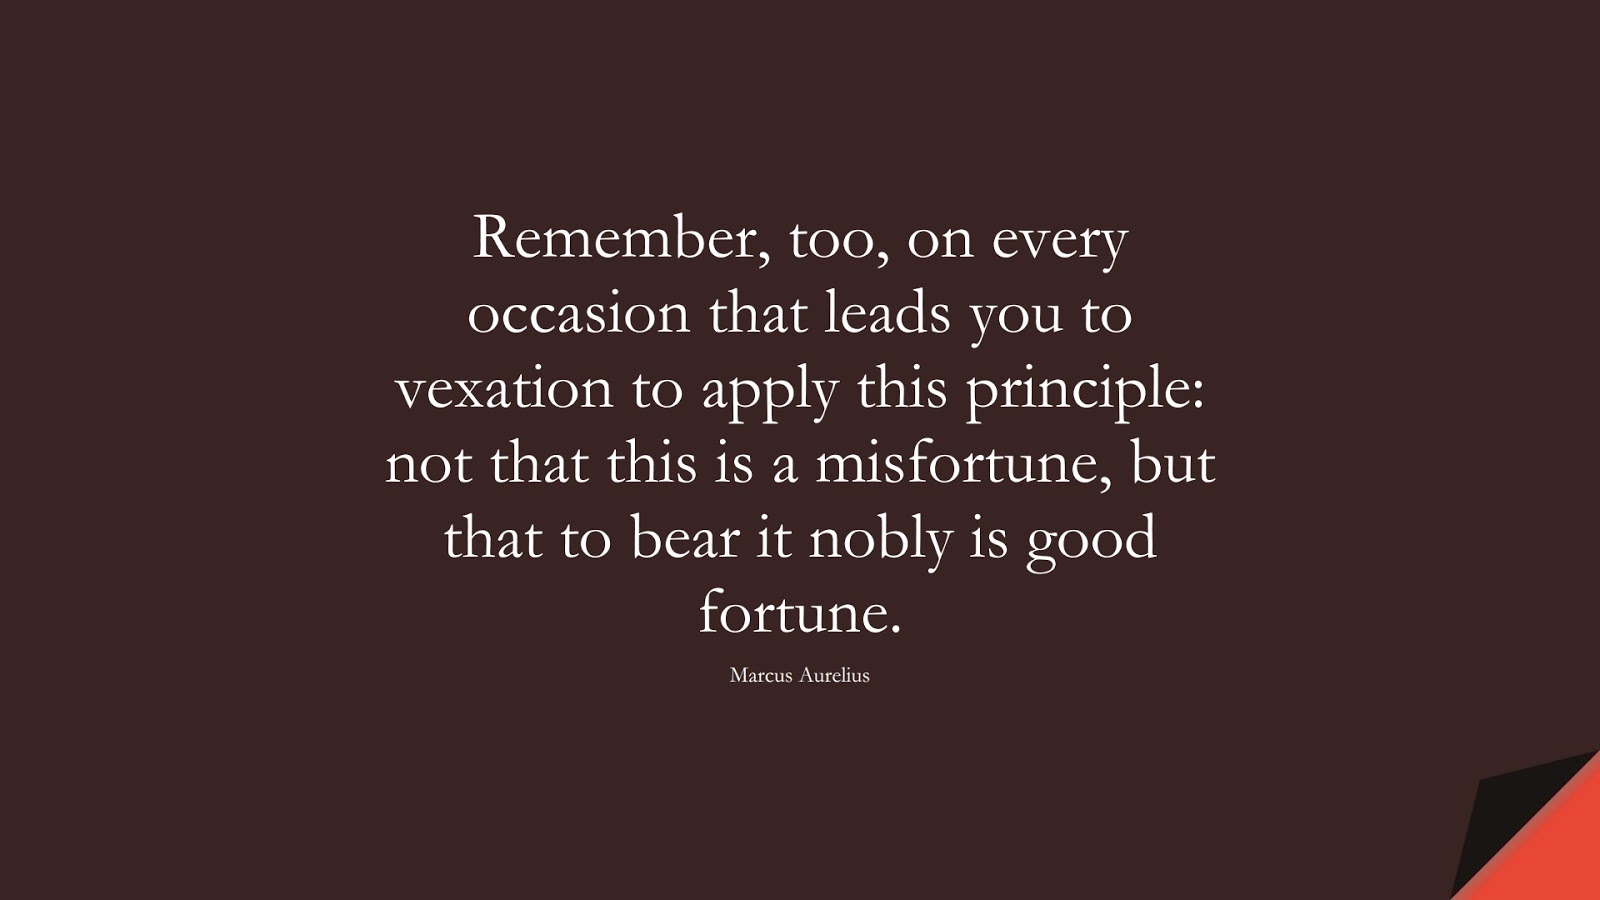 Remember, too, on every occasion that leads you to vexation to apply this principle: not that this is a misfortune, but that to bear it nobly is good fortune. (Marcus Aurelius);  #MarcusAureliusQuotes